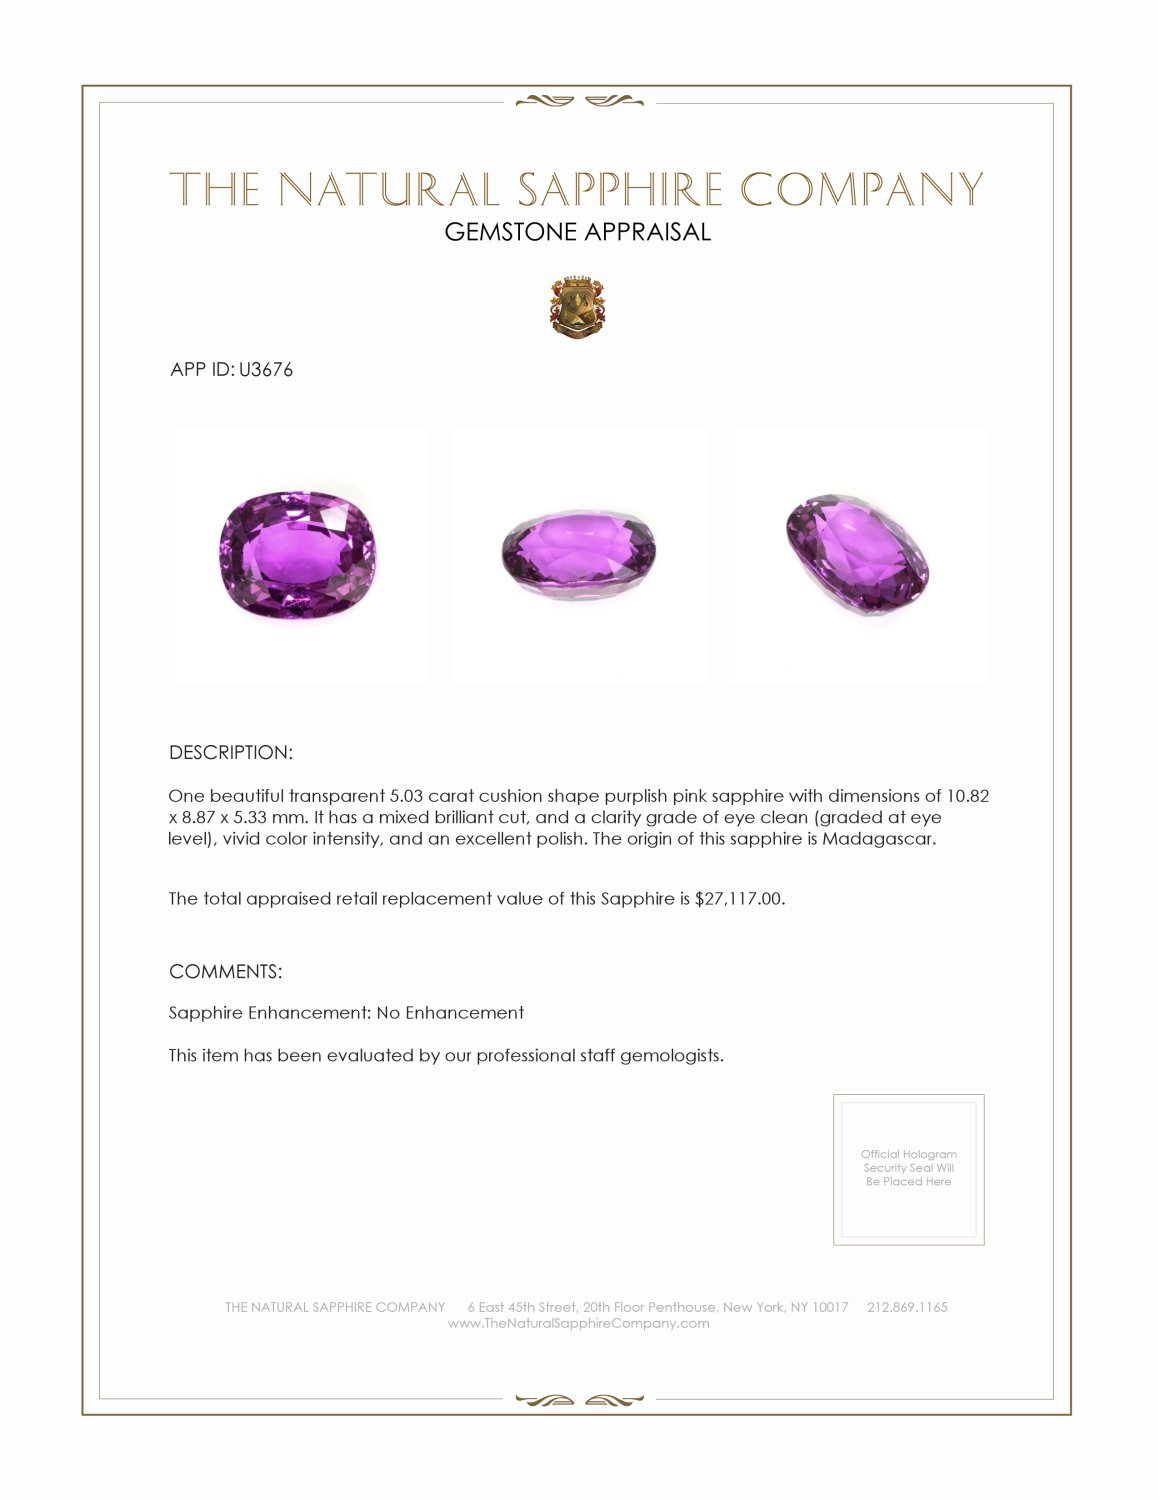 Natural Untreated Pinkish Purple Sapphire U3676 Certification 4